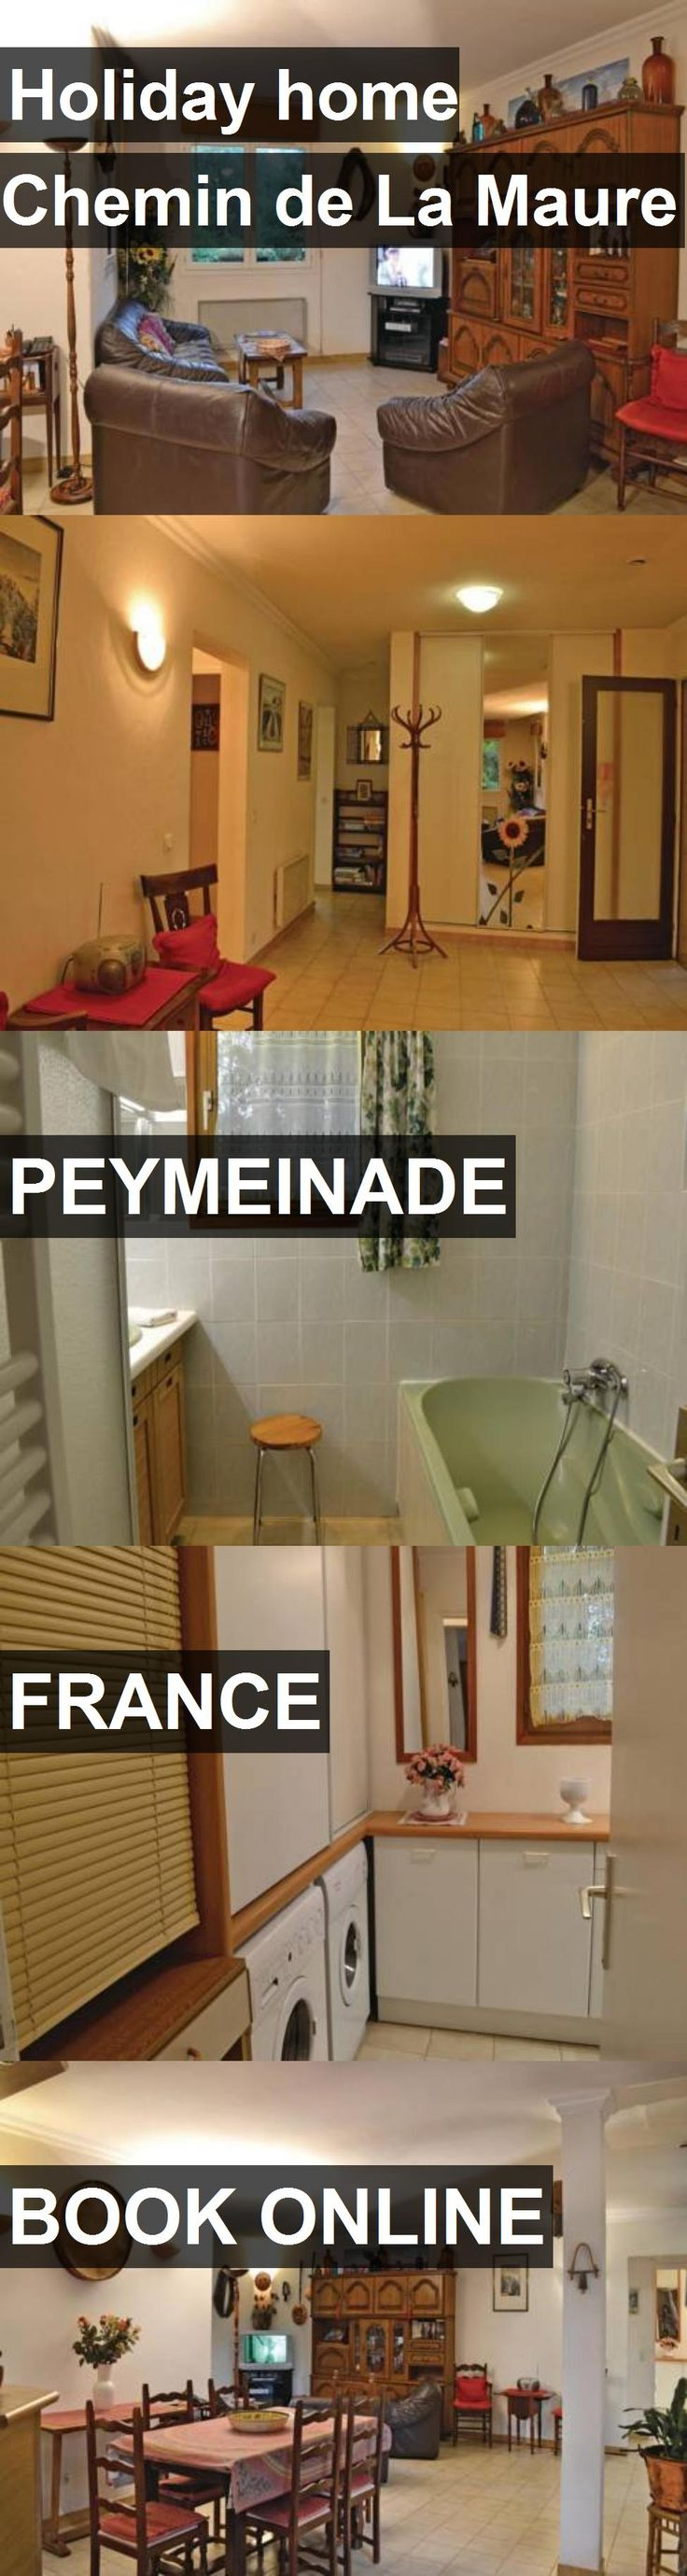 Hotel Holiday home Chemin de La Maure in Peymeinade, France. For more information, photos, reviews and best prices please follow the link. #France #Peymeinade #travel #vacation #hotel